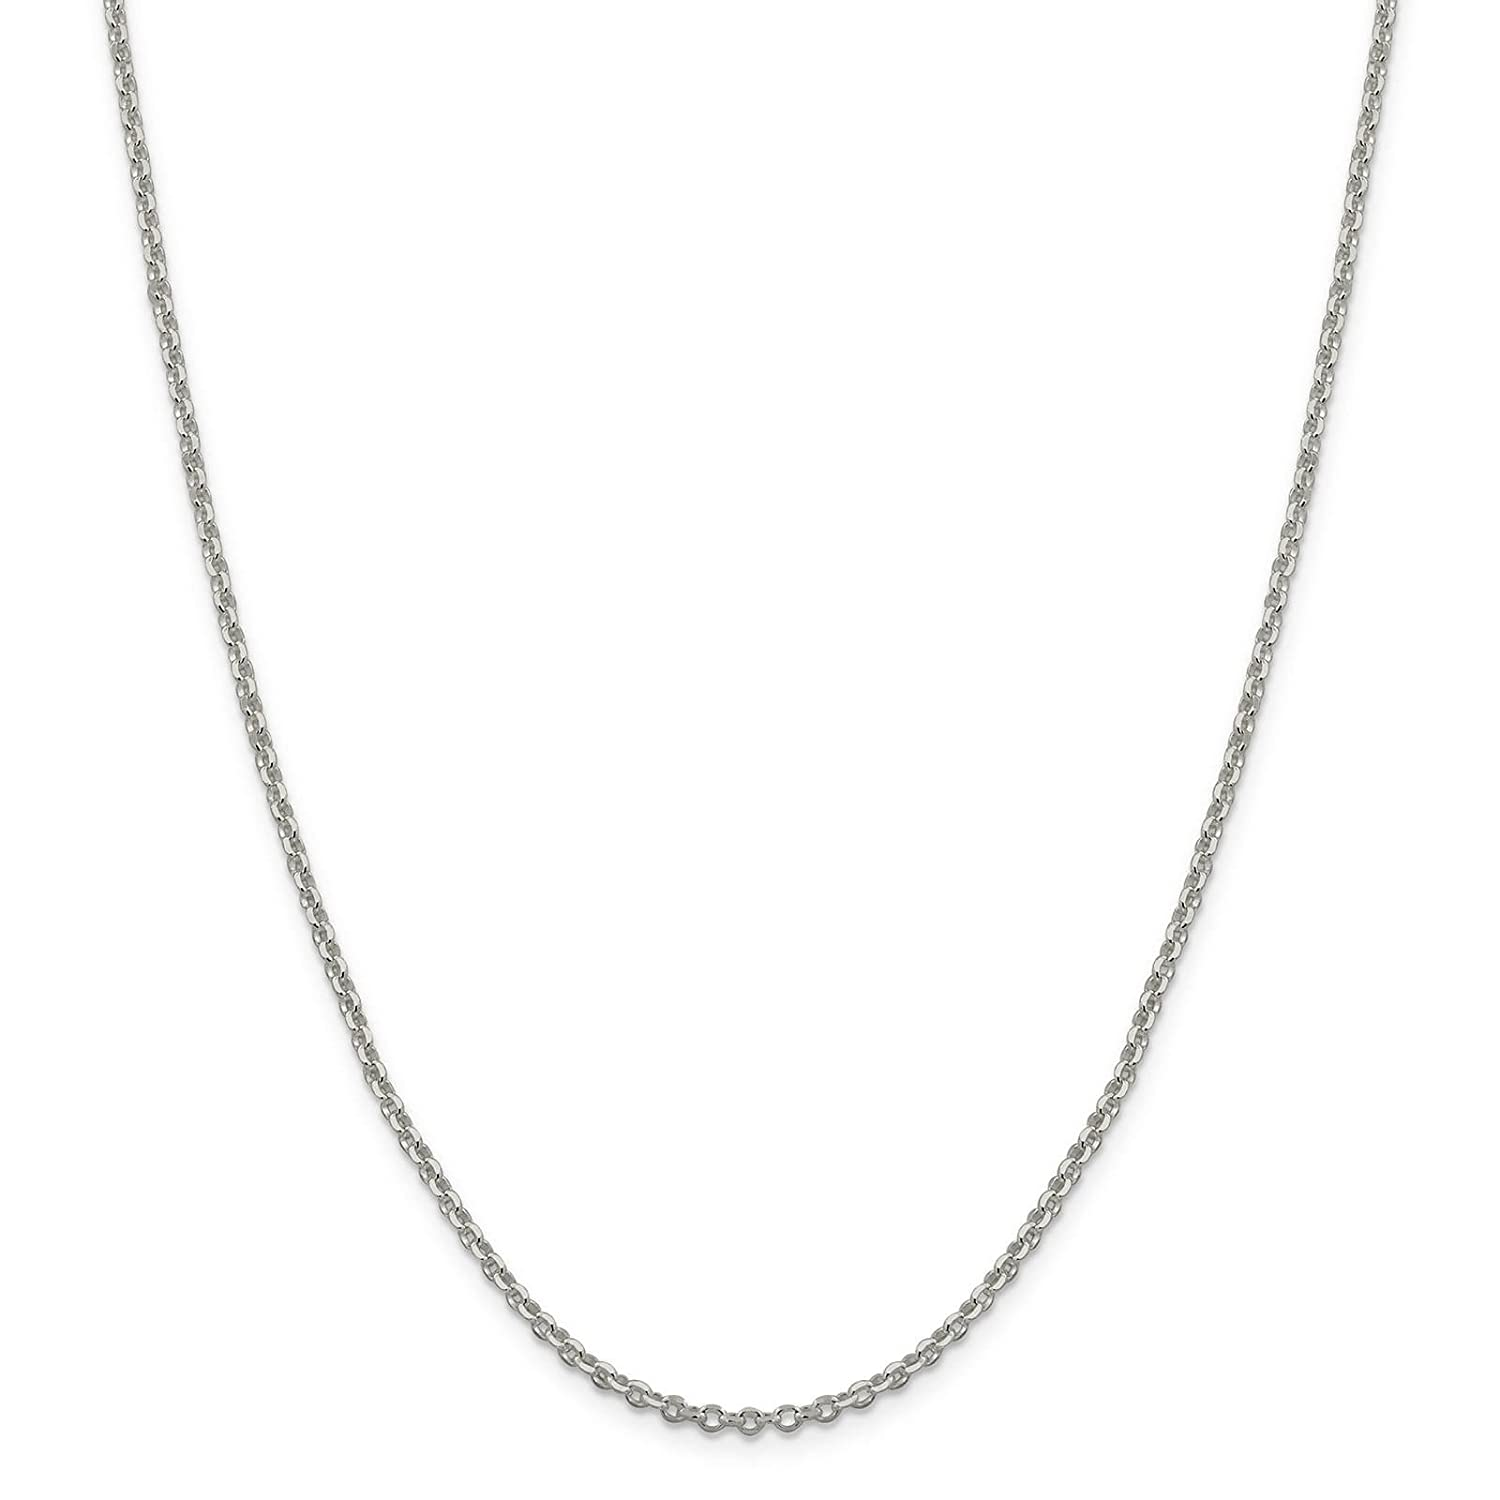 925 Sterling Silver 2.5mm 8 Side Diamond-Cut Cable Link Chain Necklace 16-30